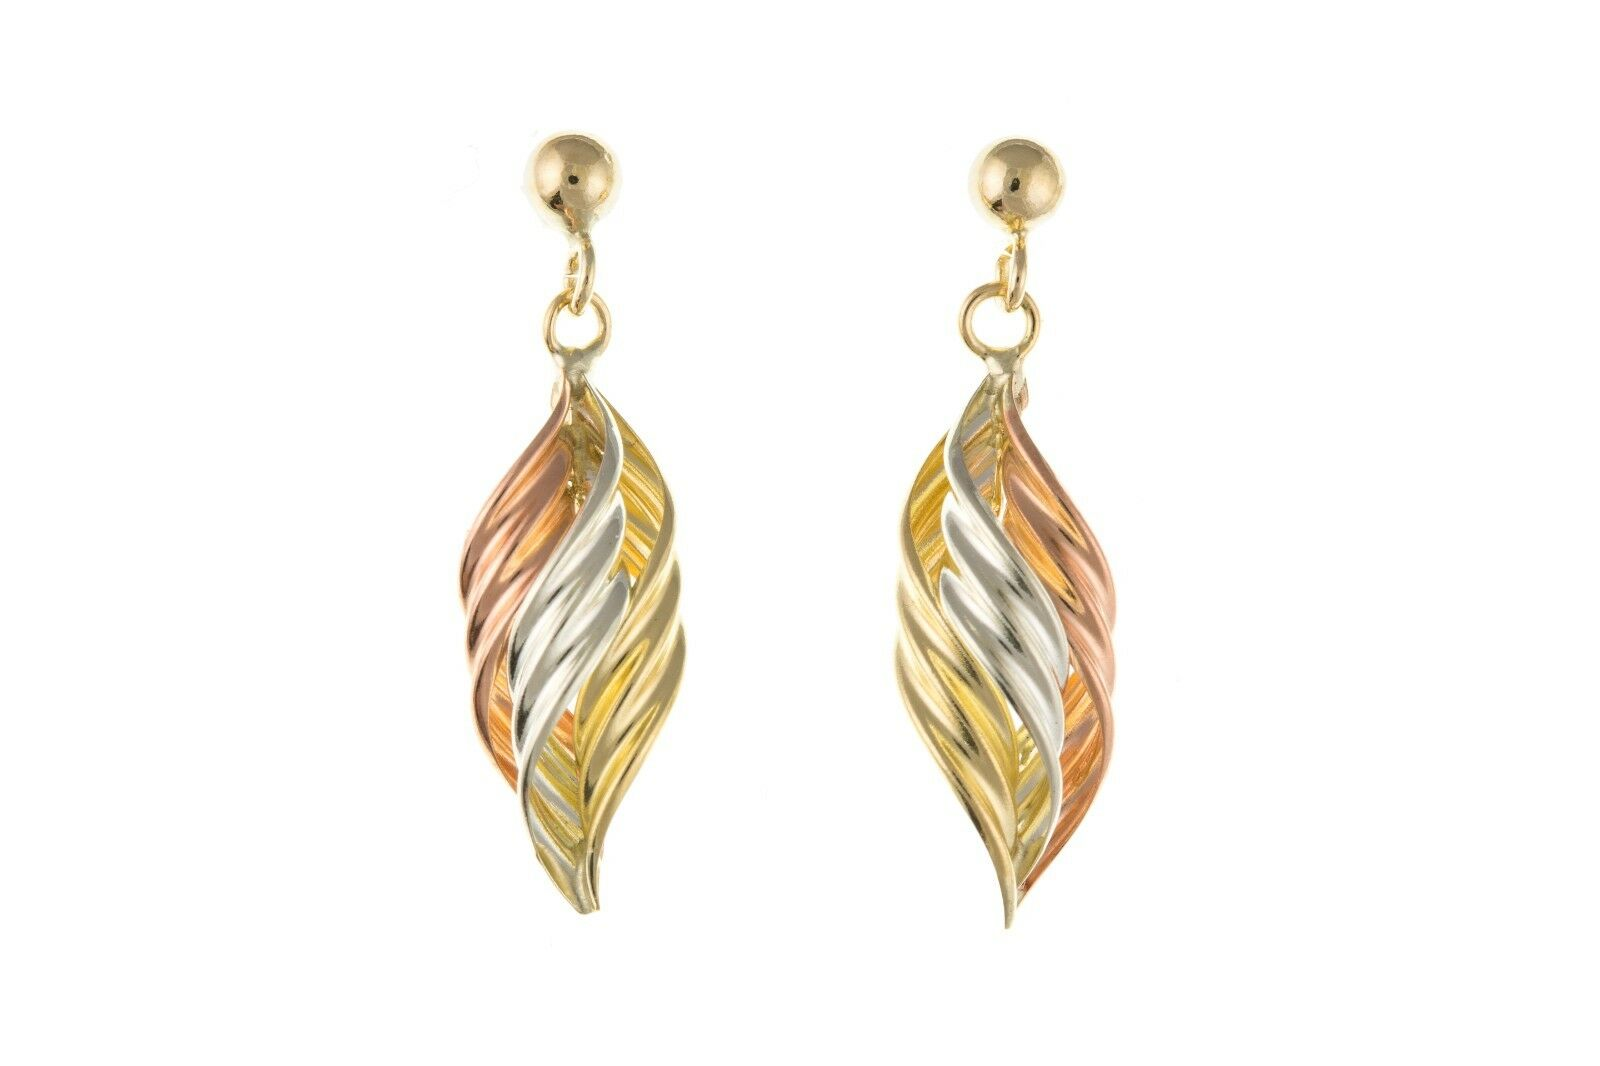 Solid gold Drop Earrings Three Colour 9 Carat Twist Drops pink Yellow White